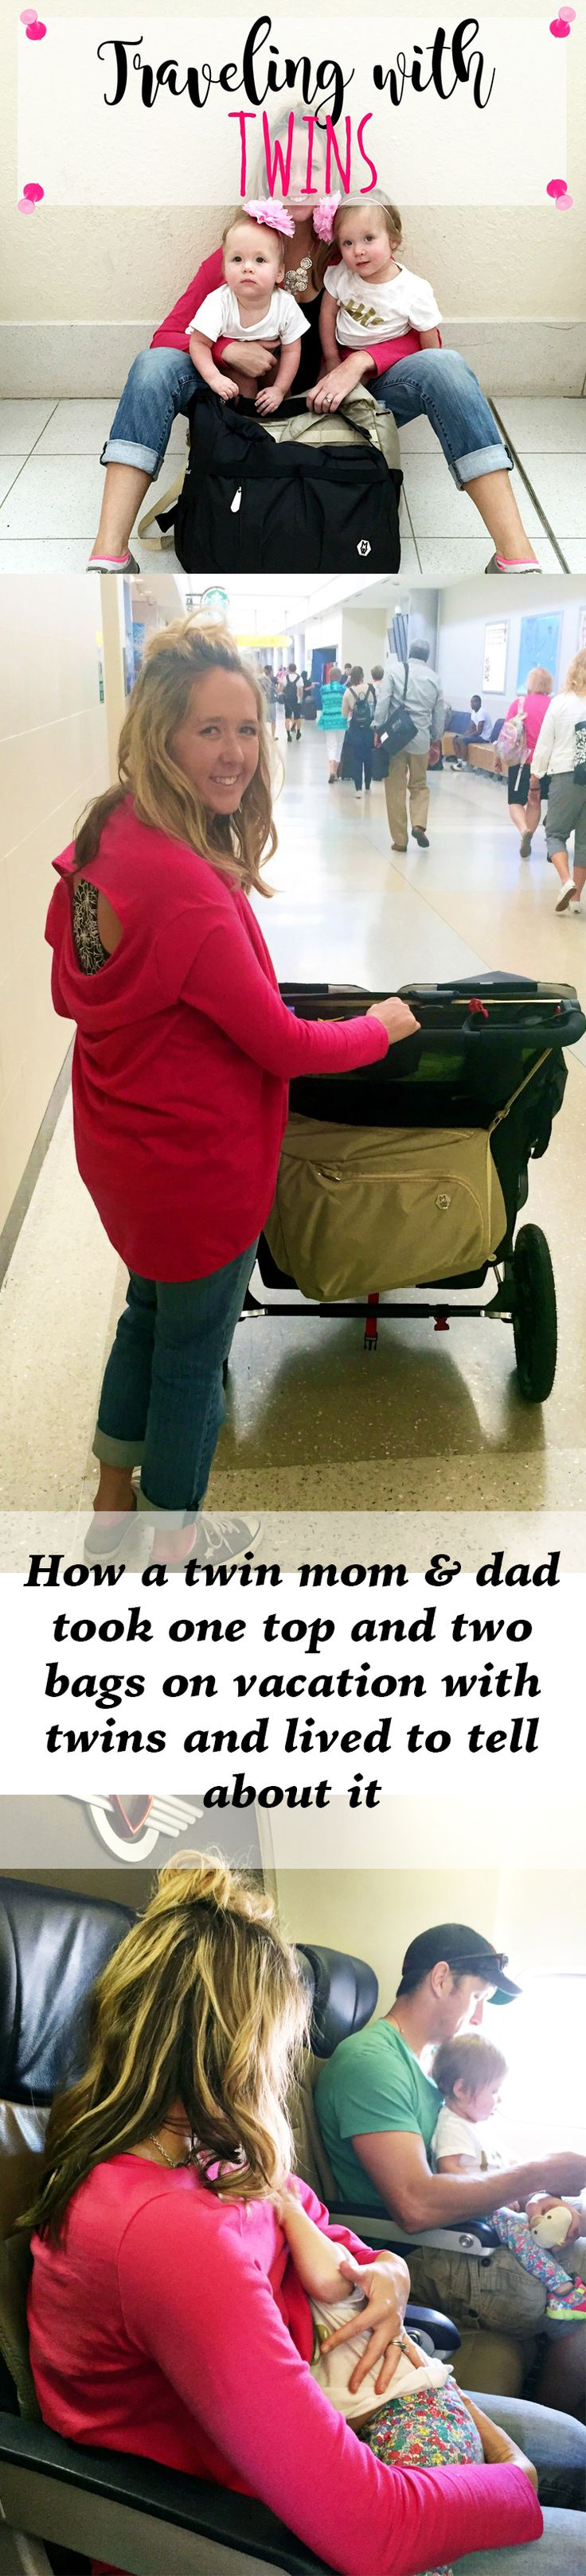 Blogger of Twin Peeks took the Cardimom® and Division of Labor bag on vacation with twins. The result? Rave reviews! nursing covers, traveling with kids, diaper bags, travel bags